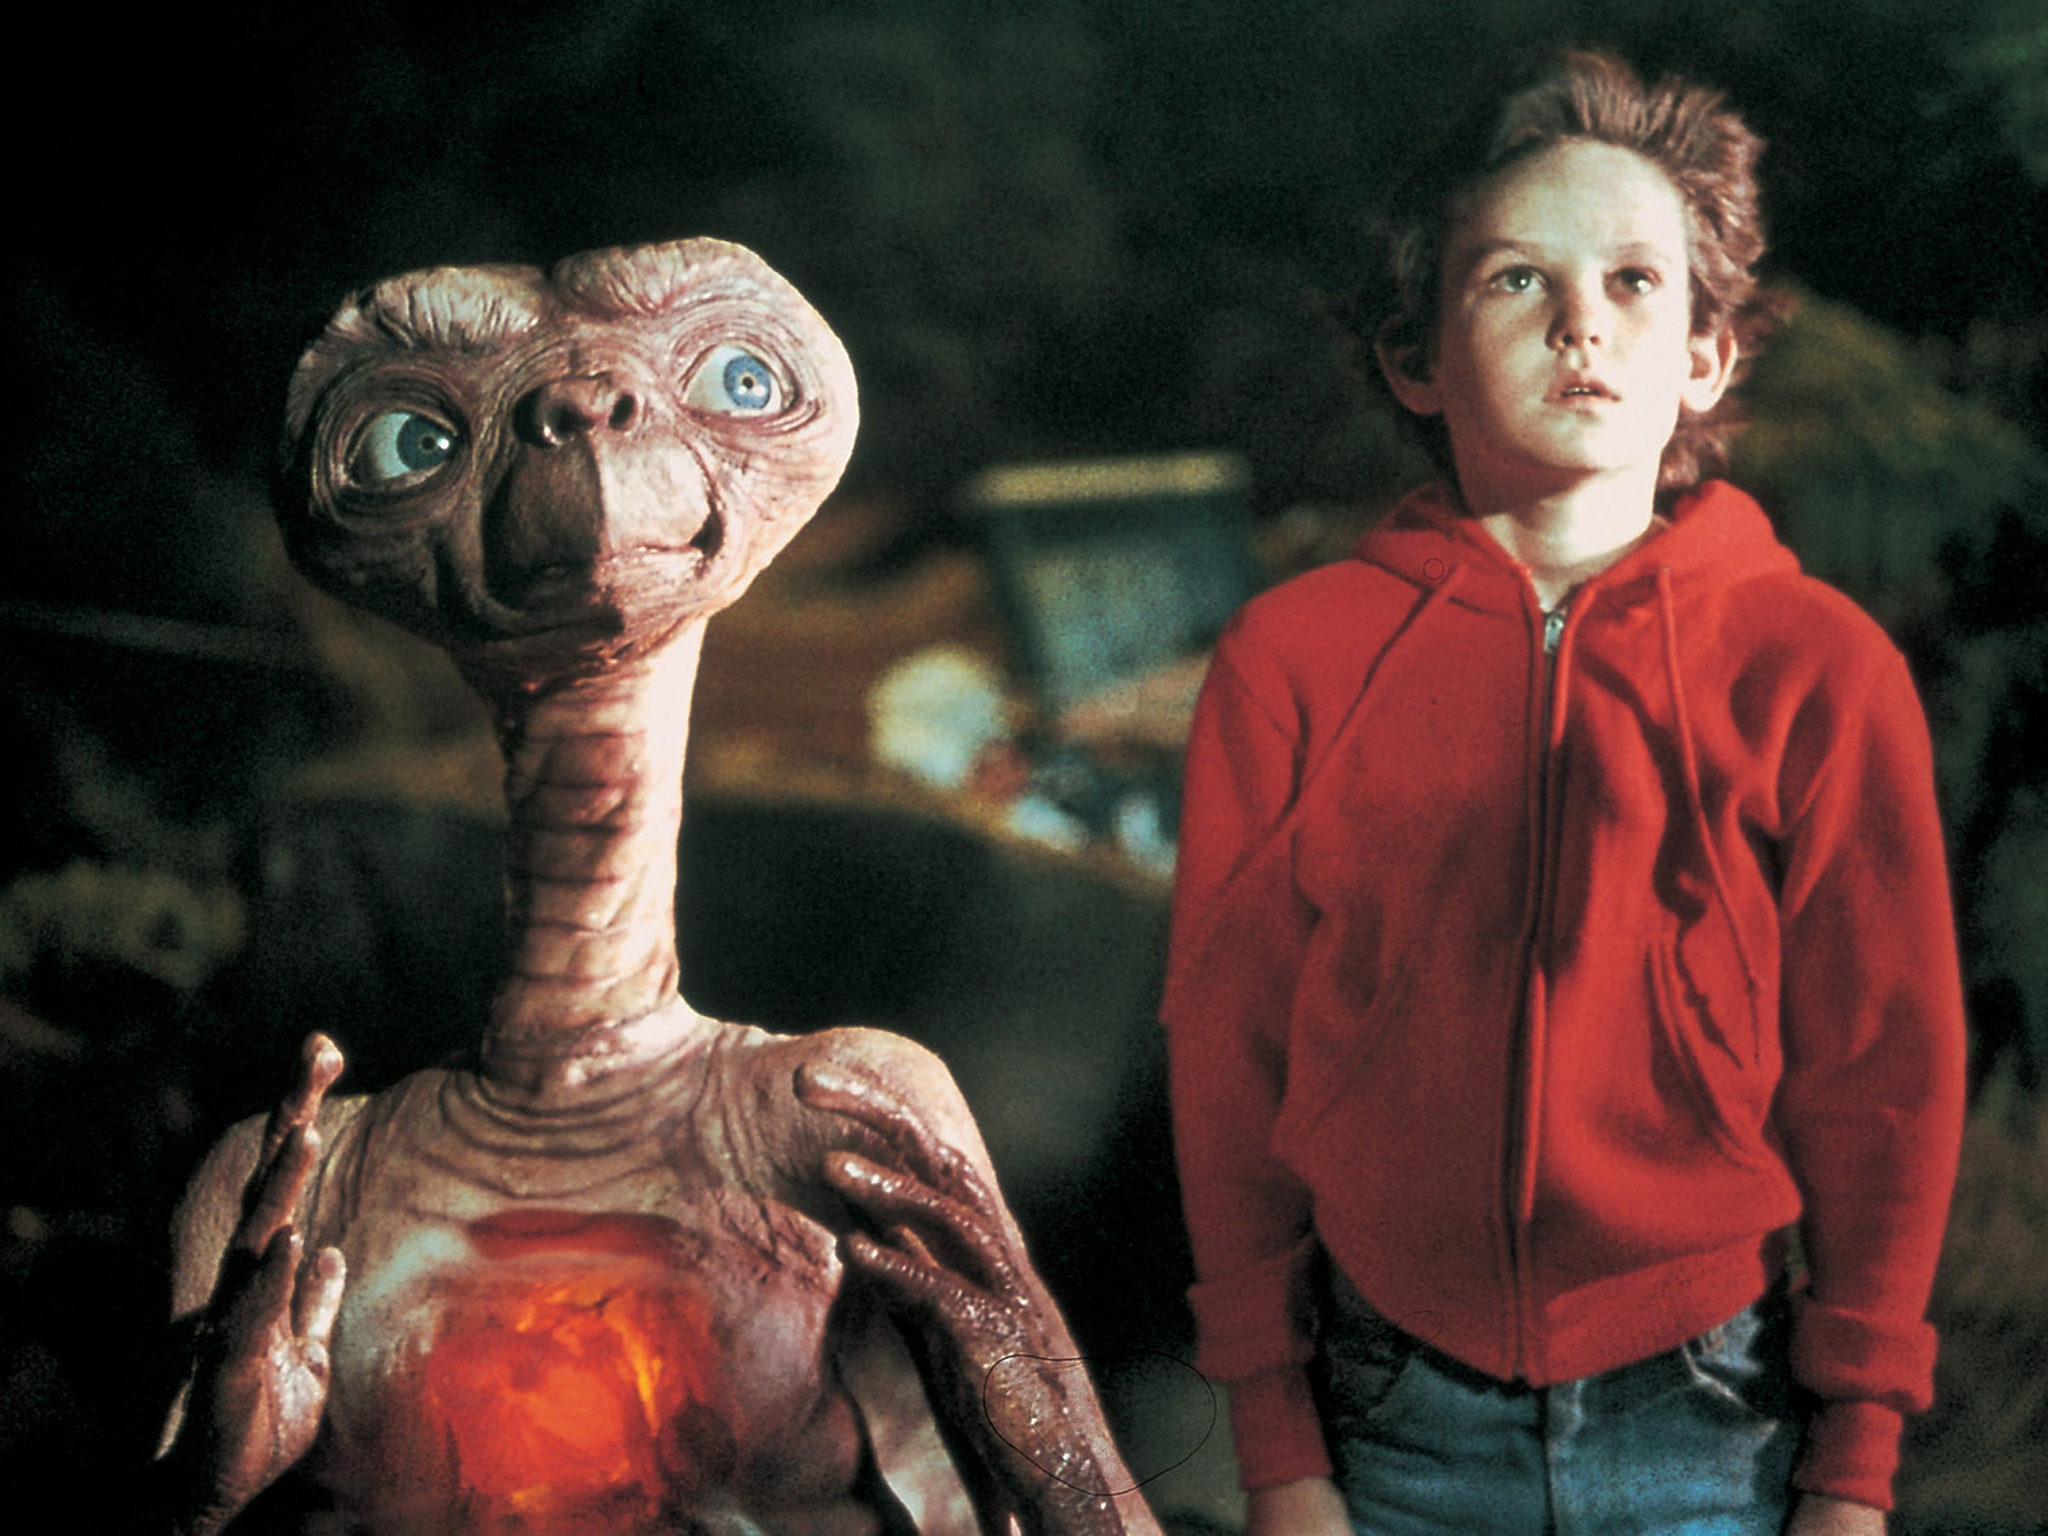 Steven Spielberg movies, E.T. The Extra Terrestrial